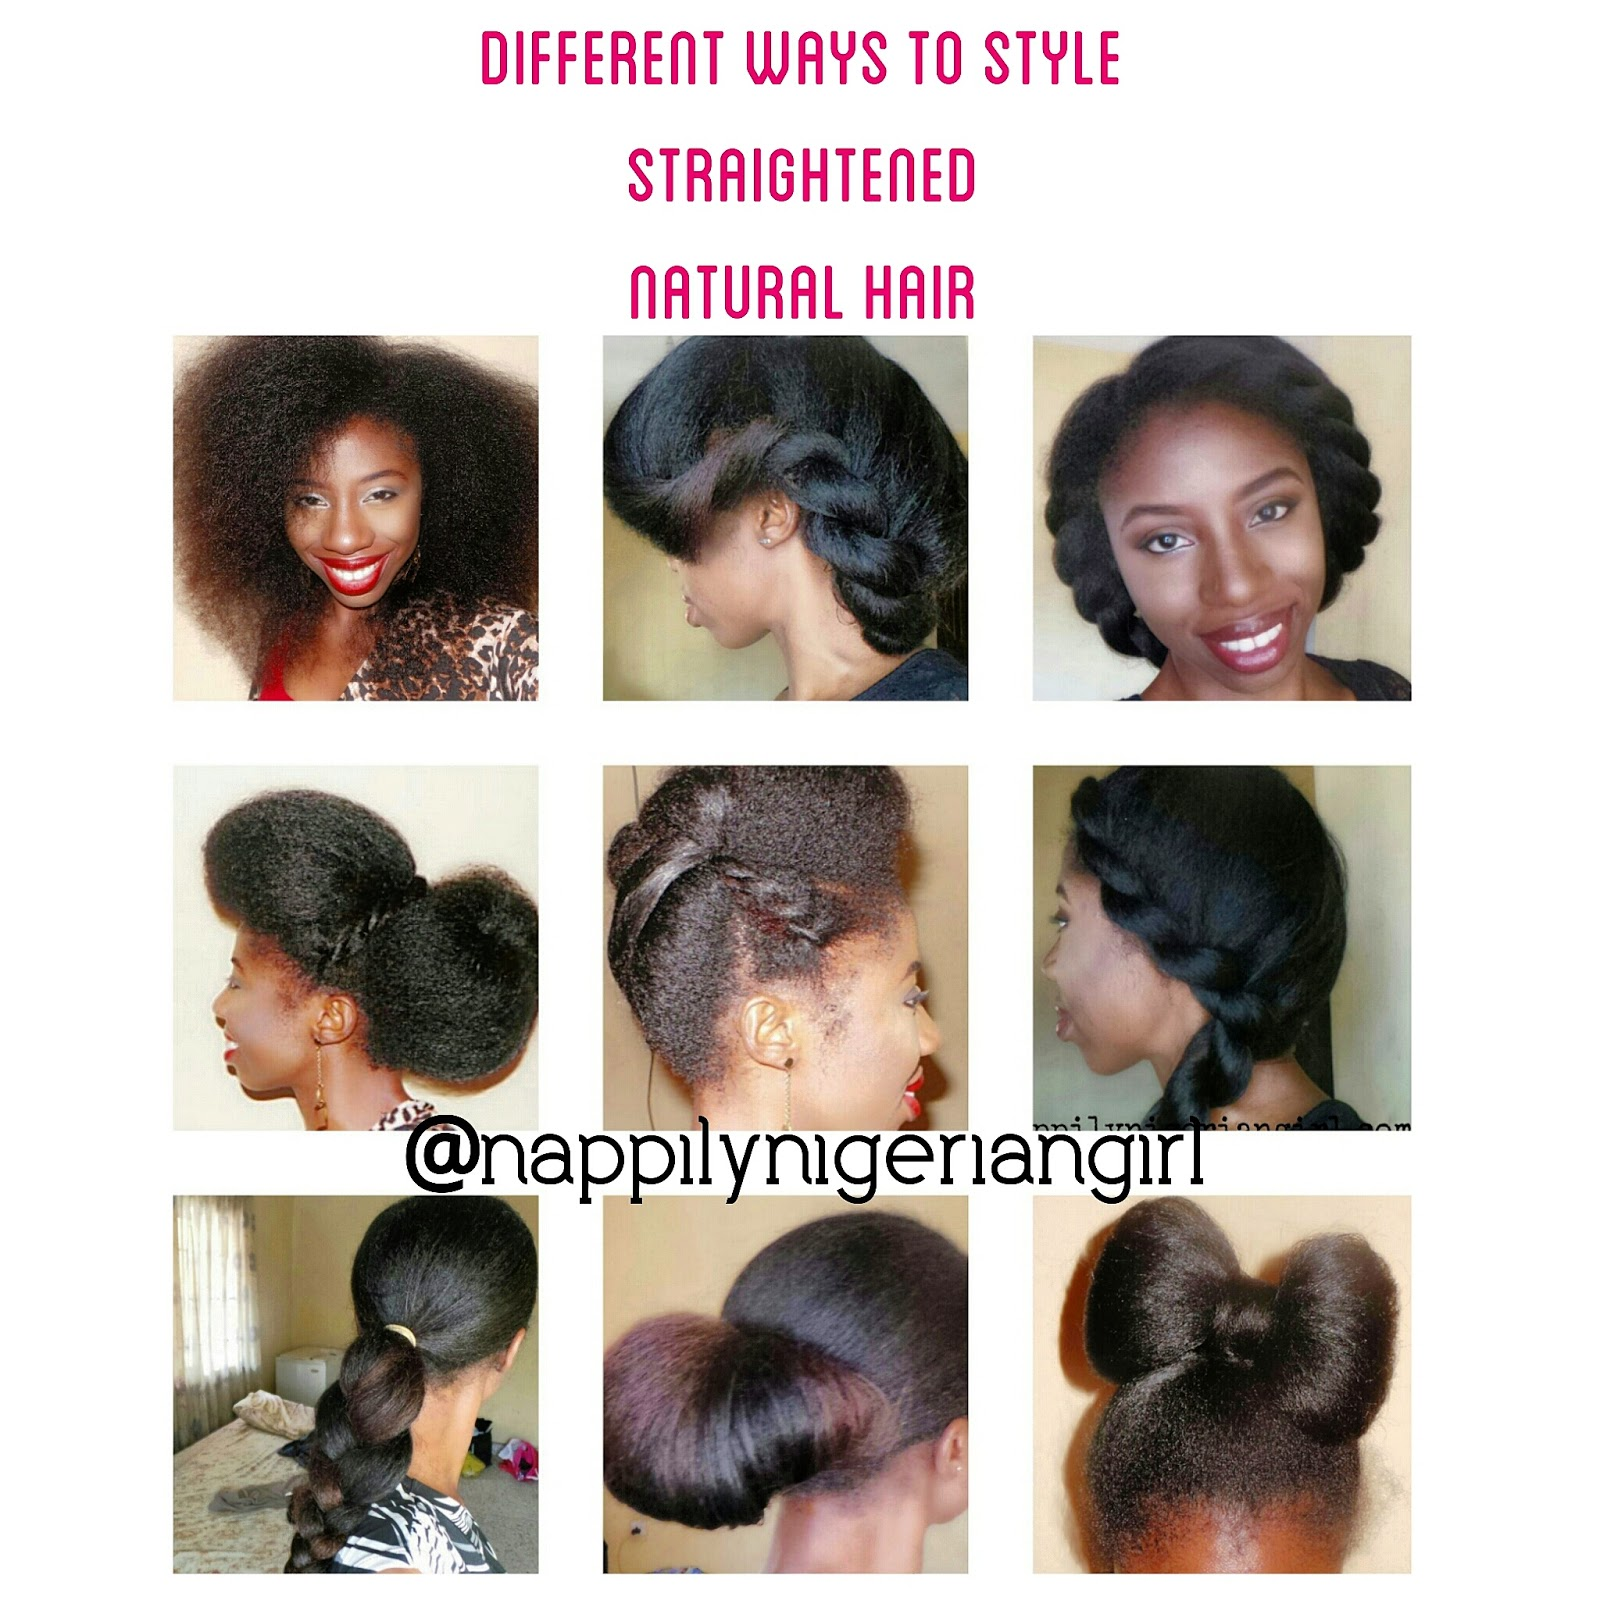 PROTECTIVE STYLES FOR STRAIGHTENED NATURAL HAIR Nappilynigeriangirl